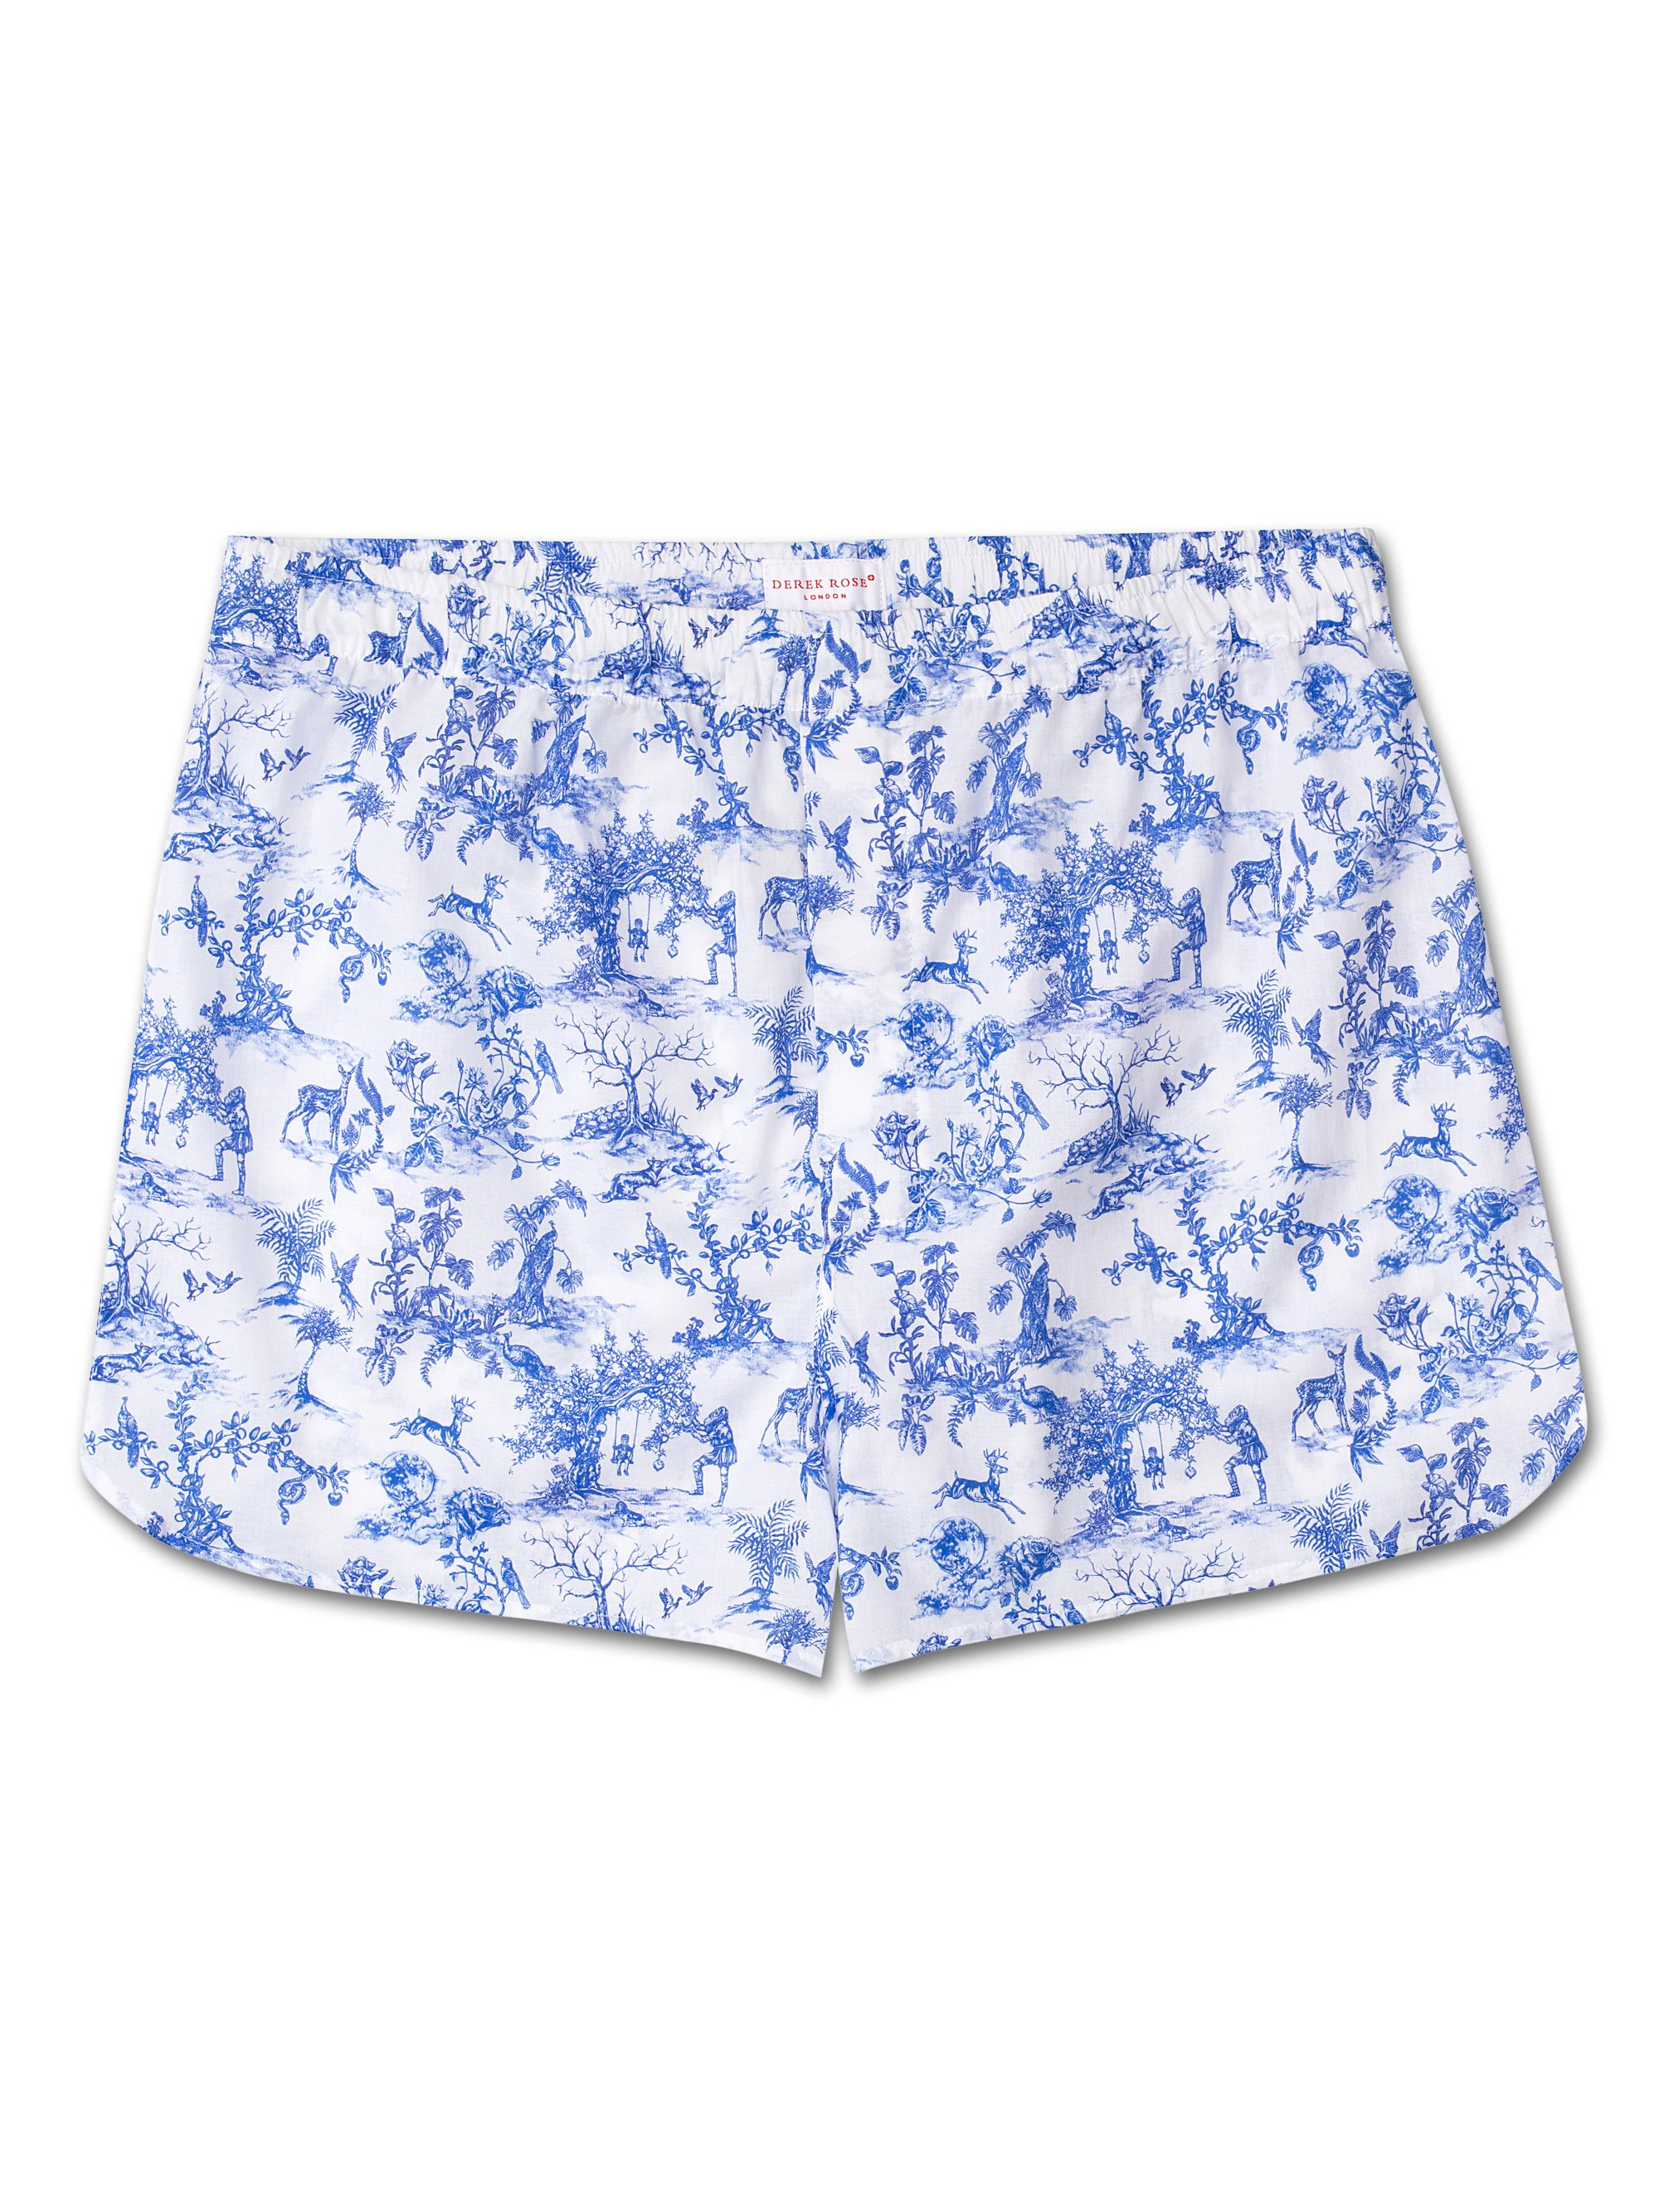 Men's Modern Fit Boxer Shorts Toile 4 Cotton Batiste Cobalt